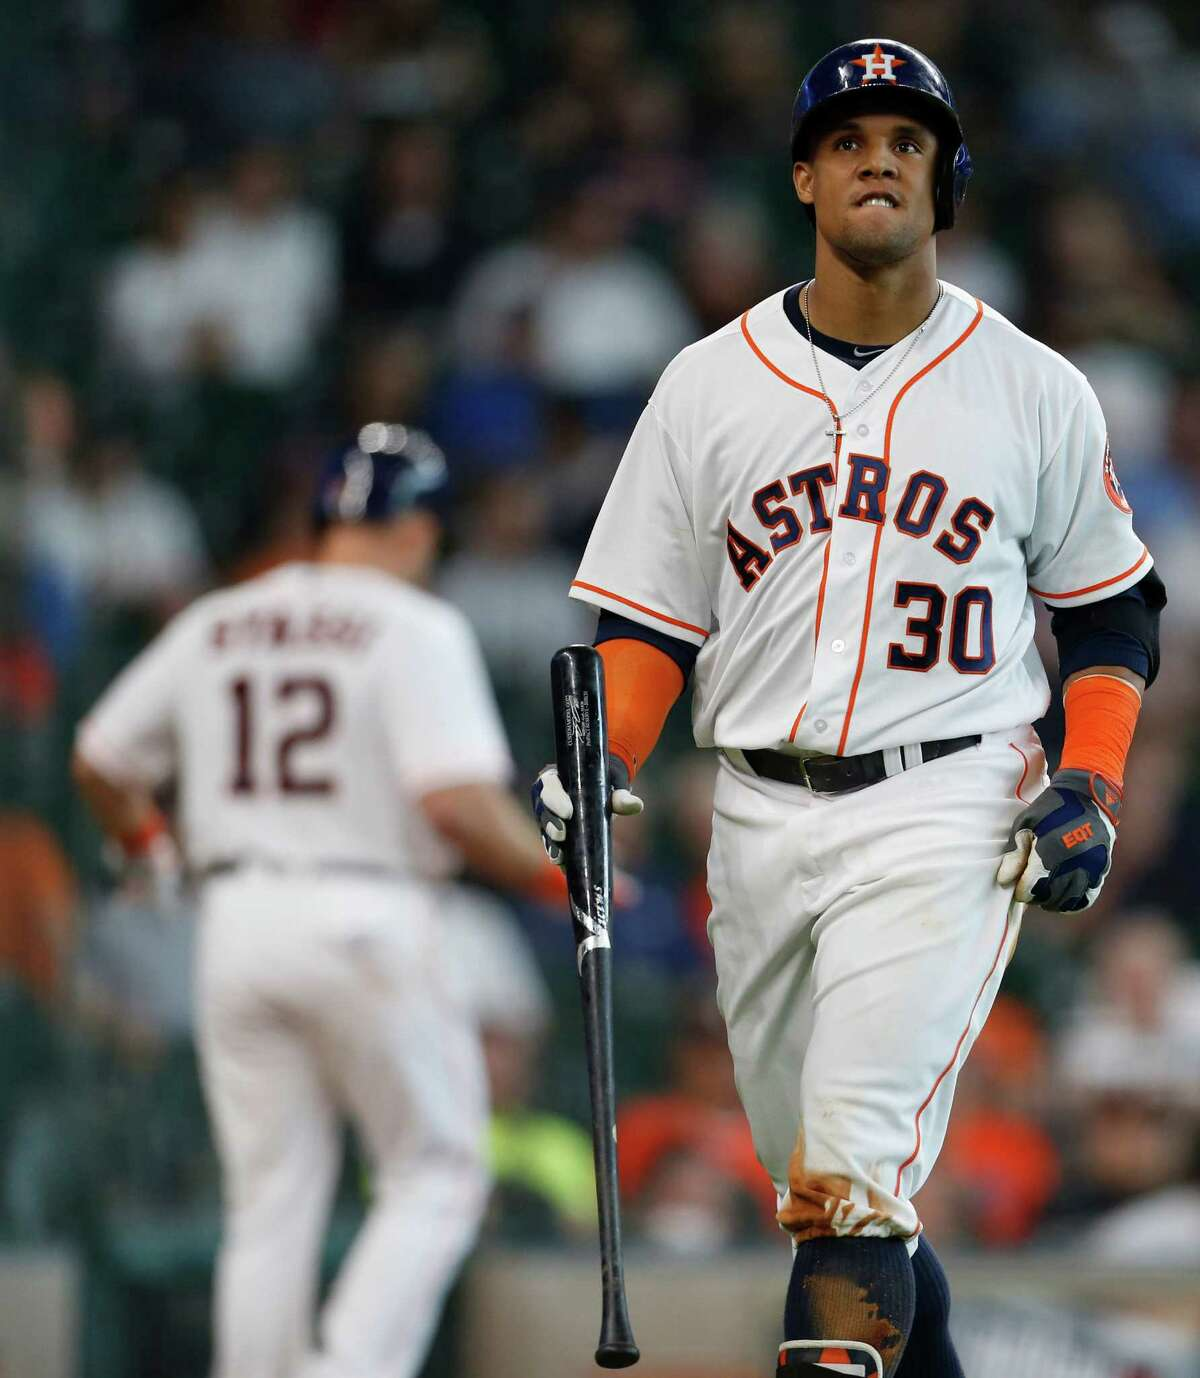 Houston Astros center fielder Carlos Gomez (30) reacts after striking out during the third inning of an MLB baseball game at Minute Maid Park, Wednesday, May 11, 2016, in Houston.